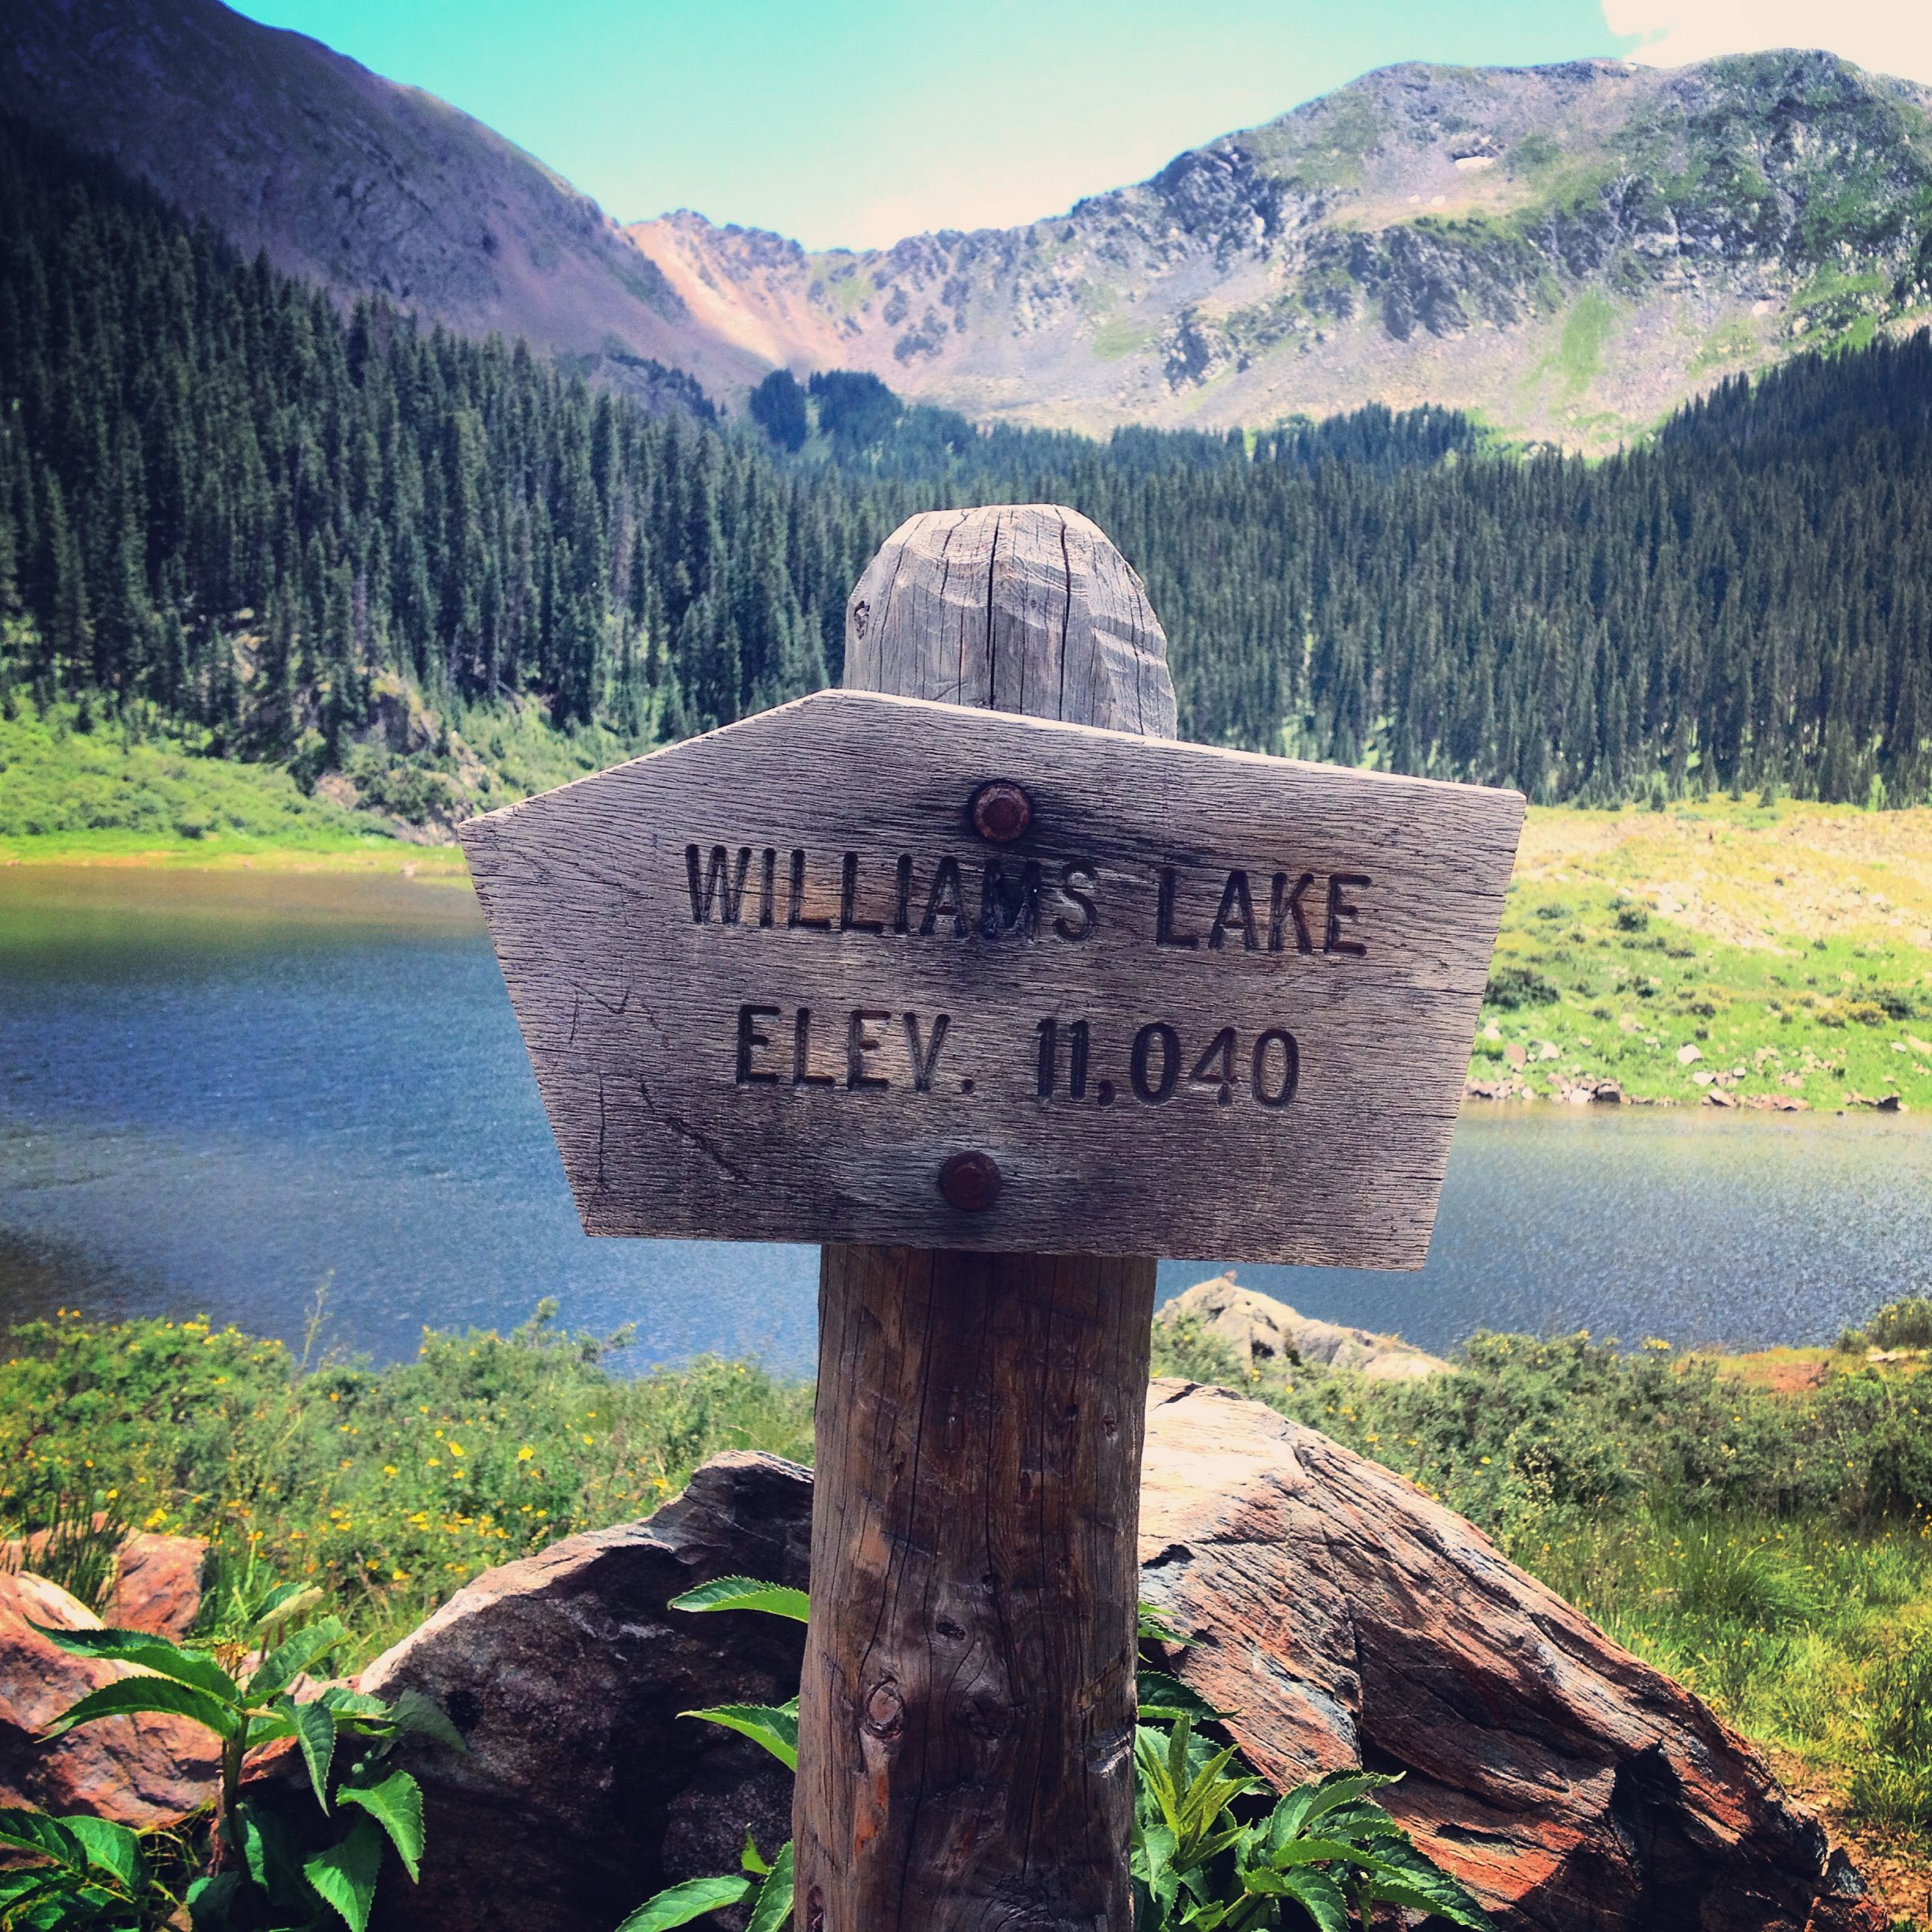 New mexico taos county carson - Williams Lake In Carson National Forest Taos Ski Valley New Mexico Usa